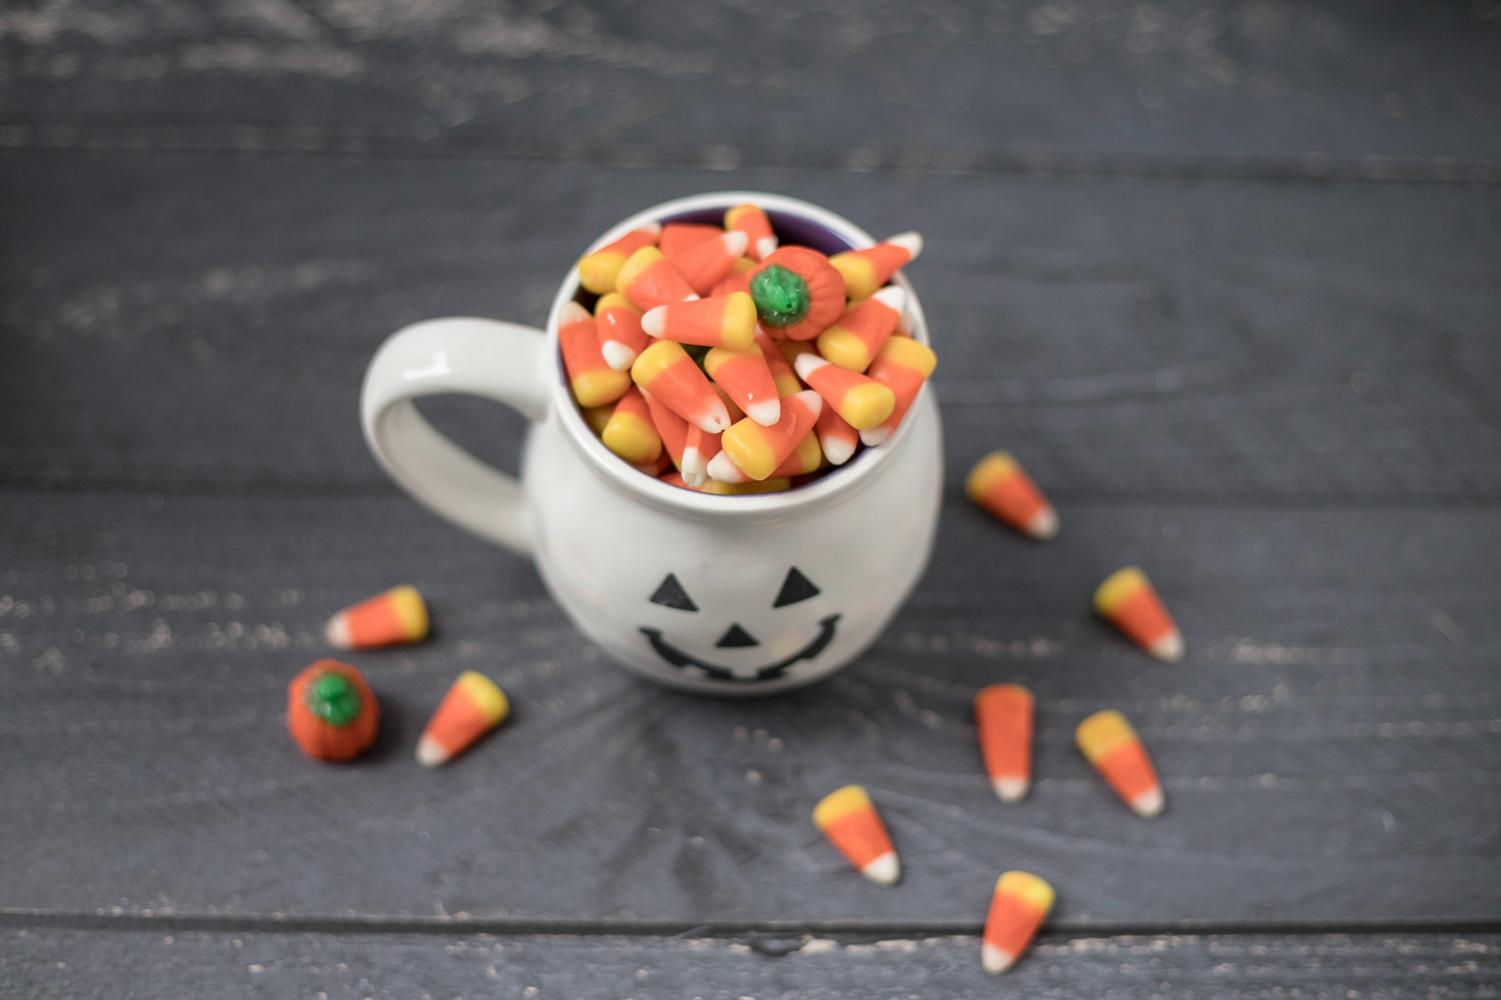 Halloween cup full of candy corn